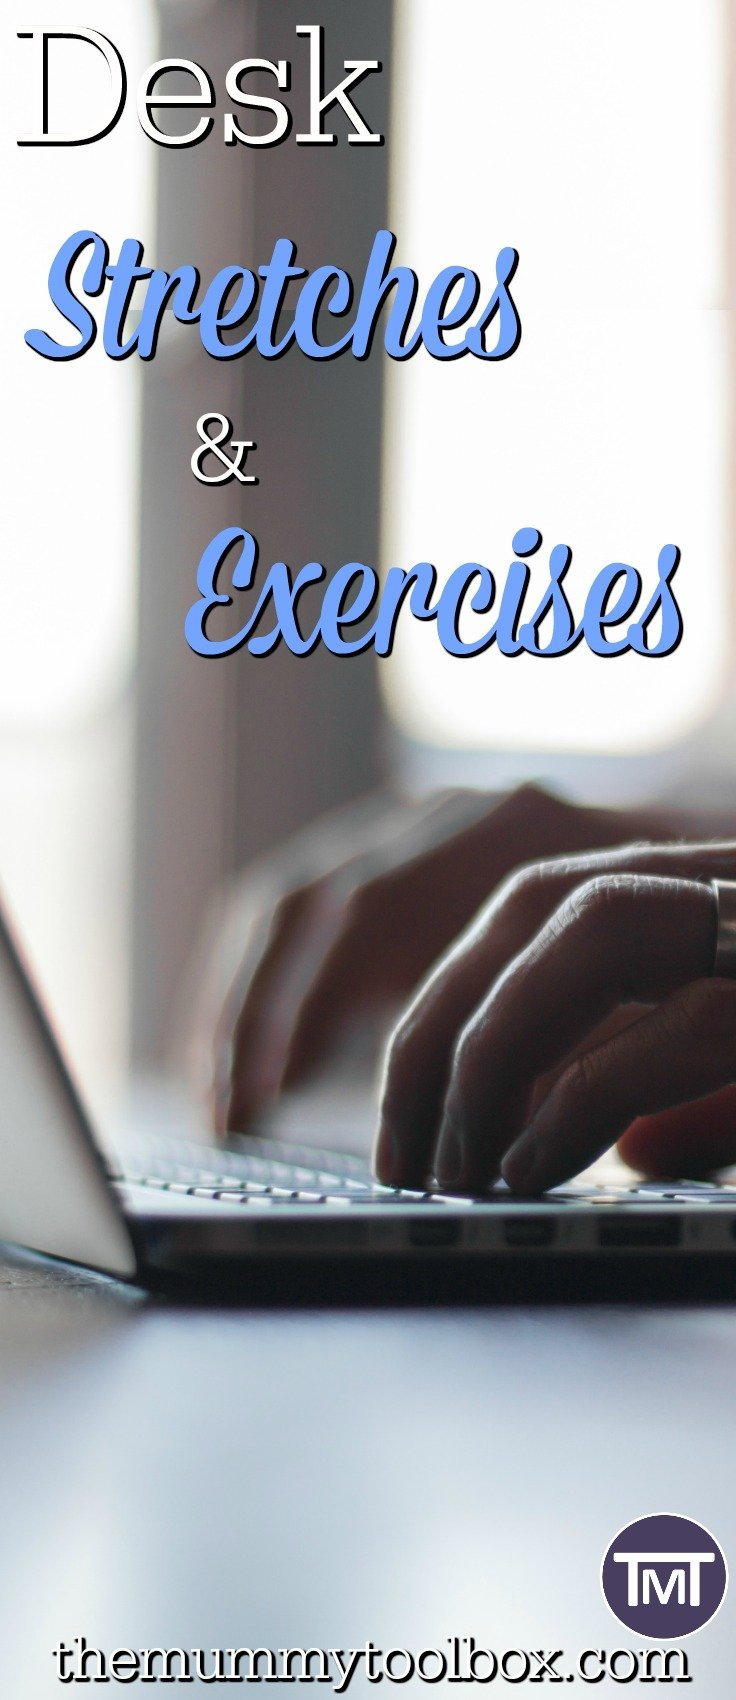 For those with a busy working lifestyle or who spend a lot of time sitting, these desk stretches and exercises will help get your exercise on at work.